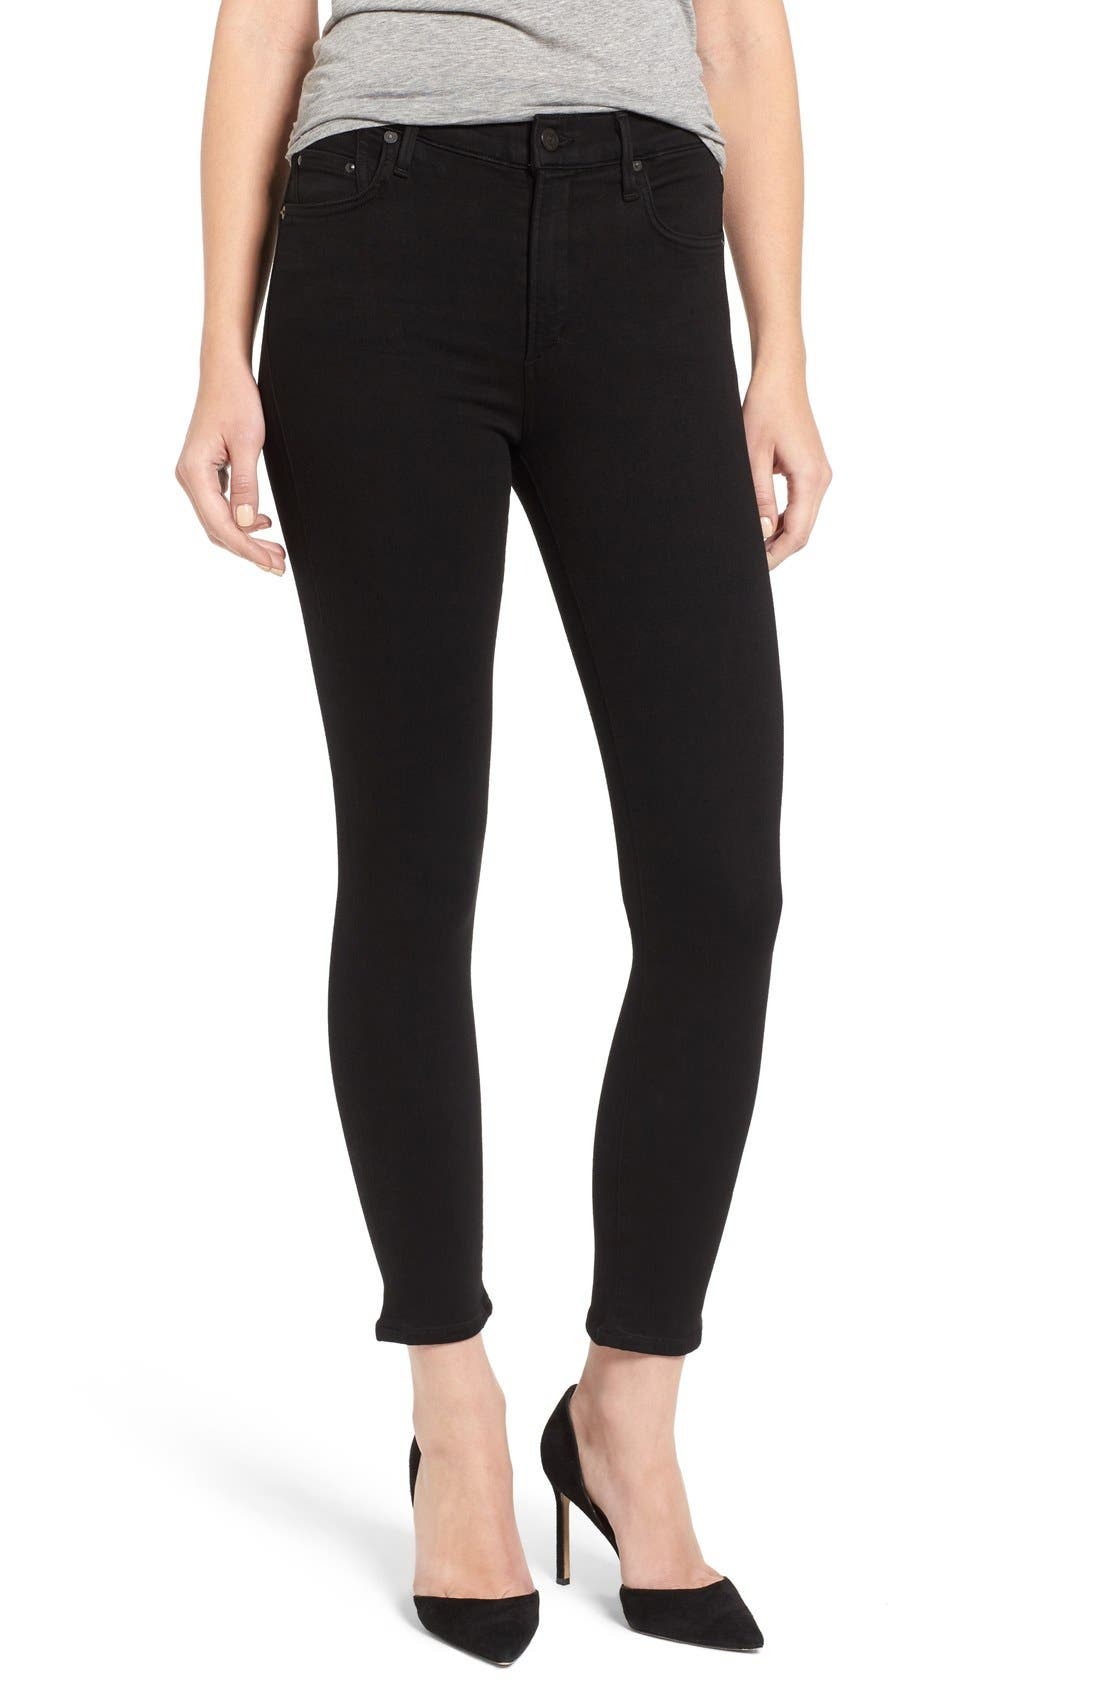 Rocket High Rise Crop Skinny Jeans,                         Main,                         color,